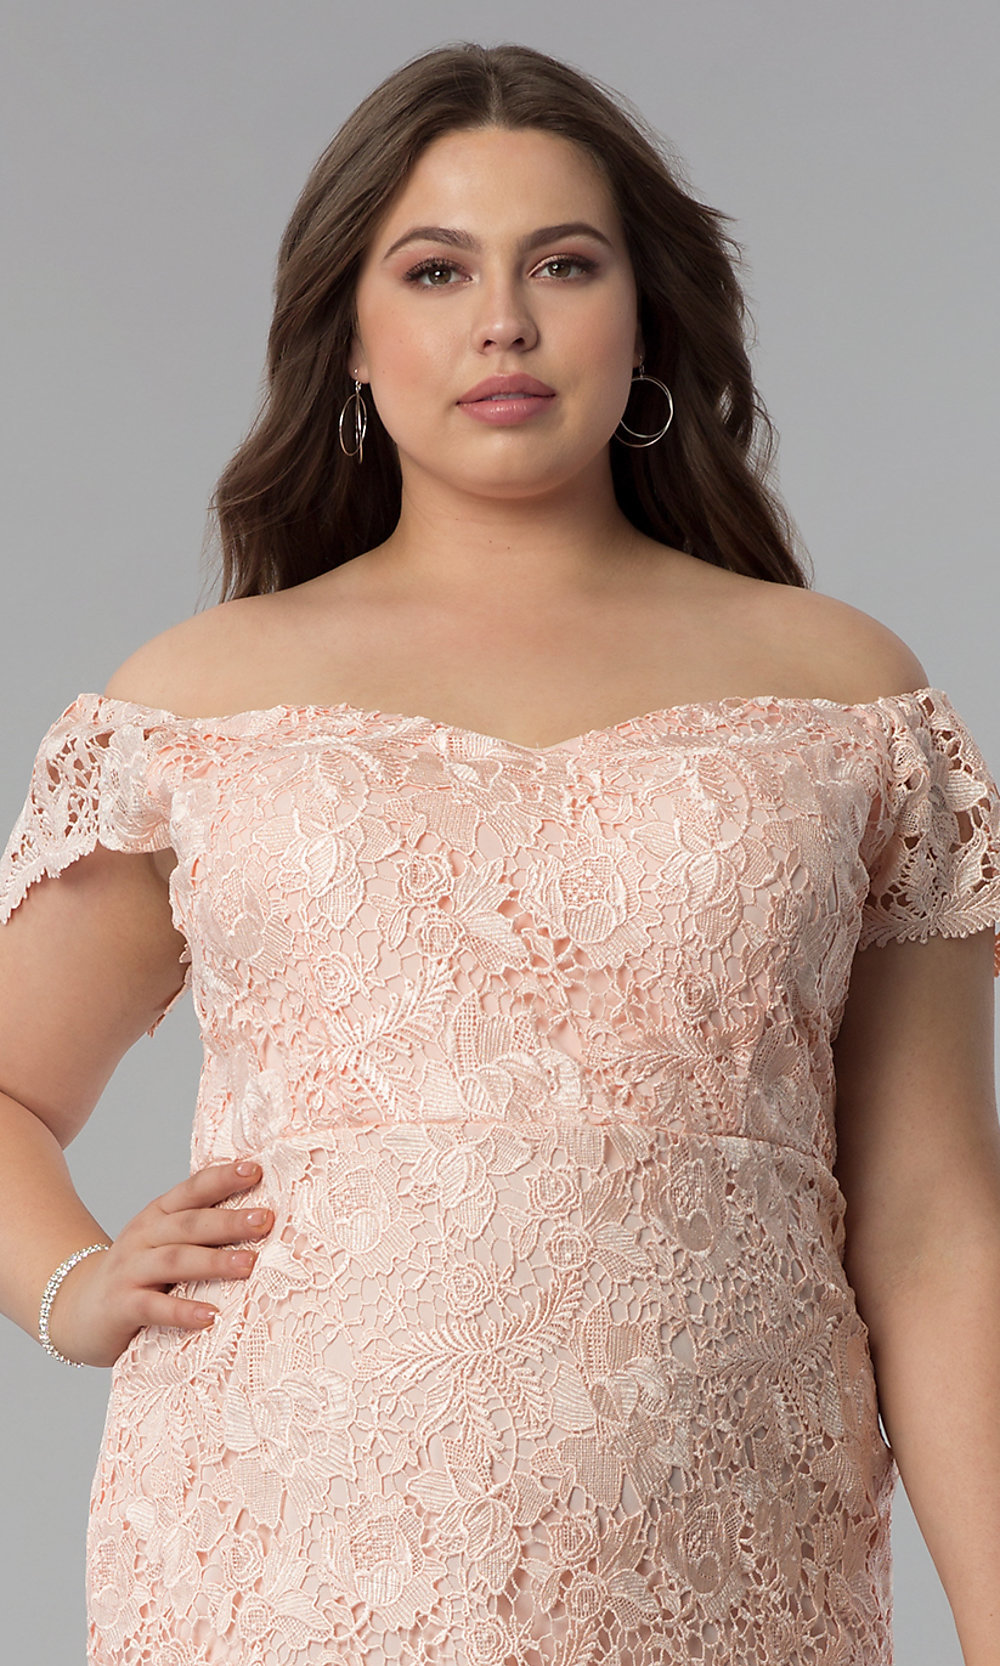 084aef78616 ... plus-size wedding guest lace dress. Style  SOI. Tap to expand